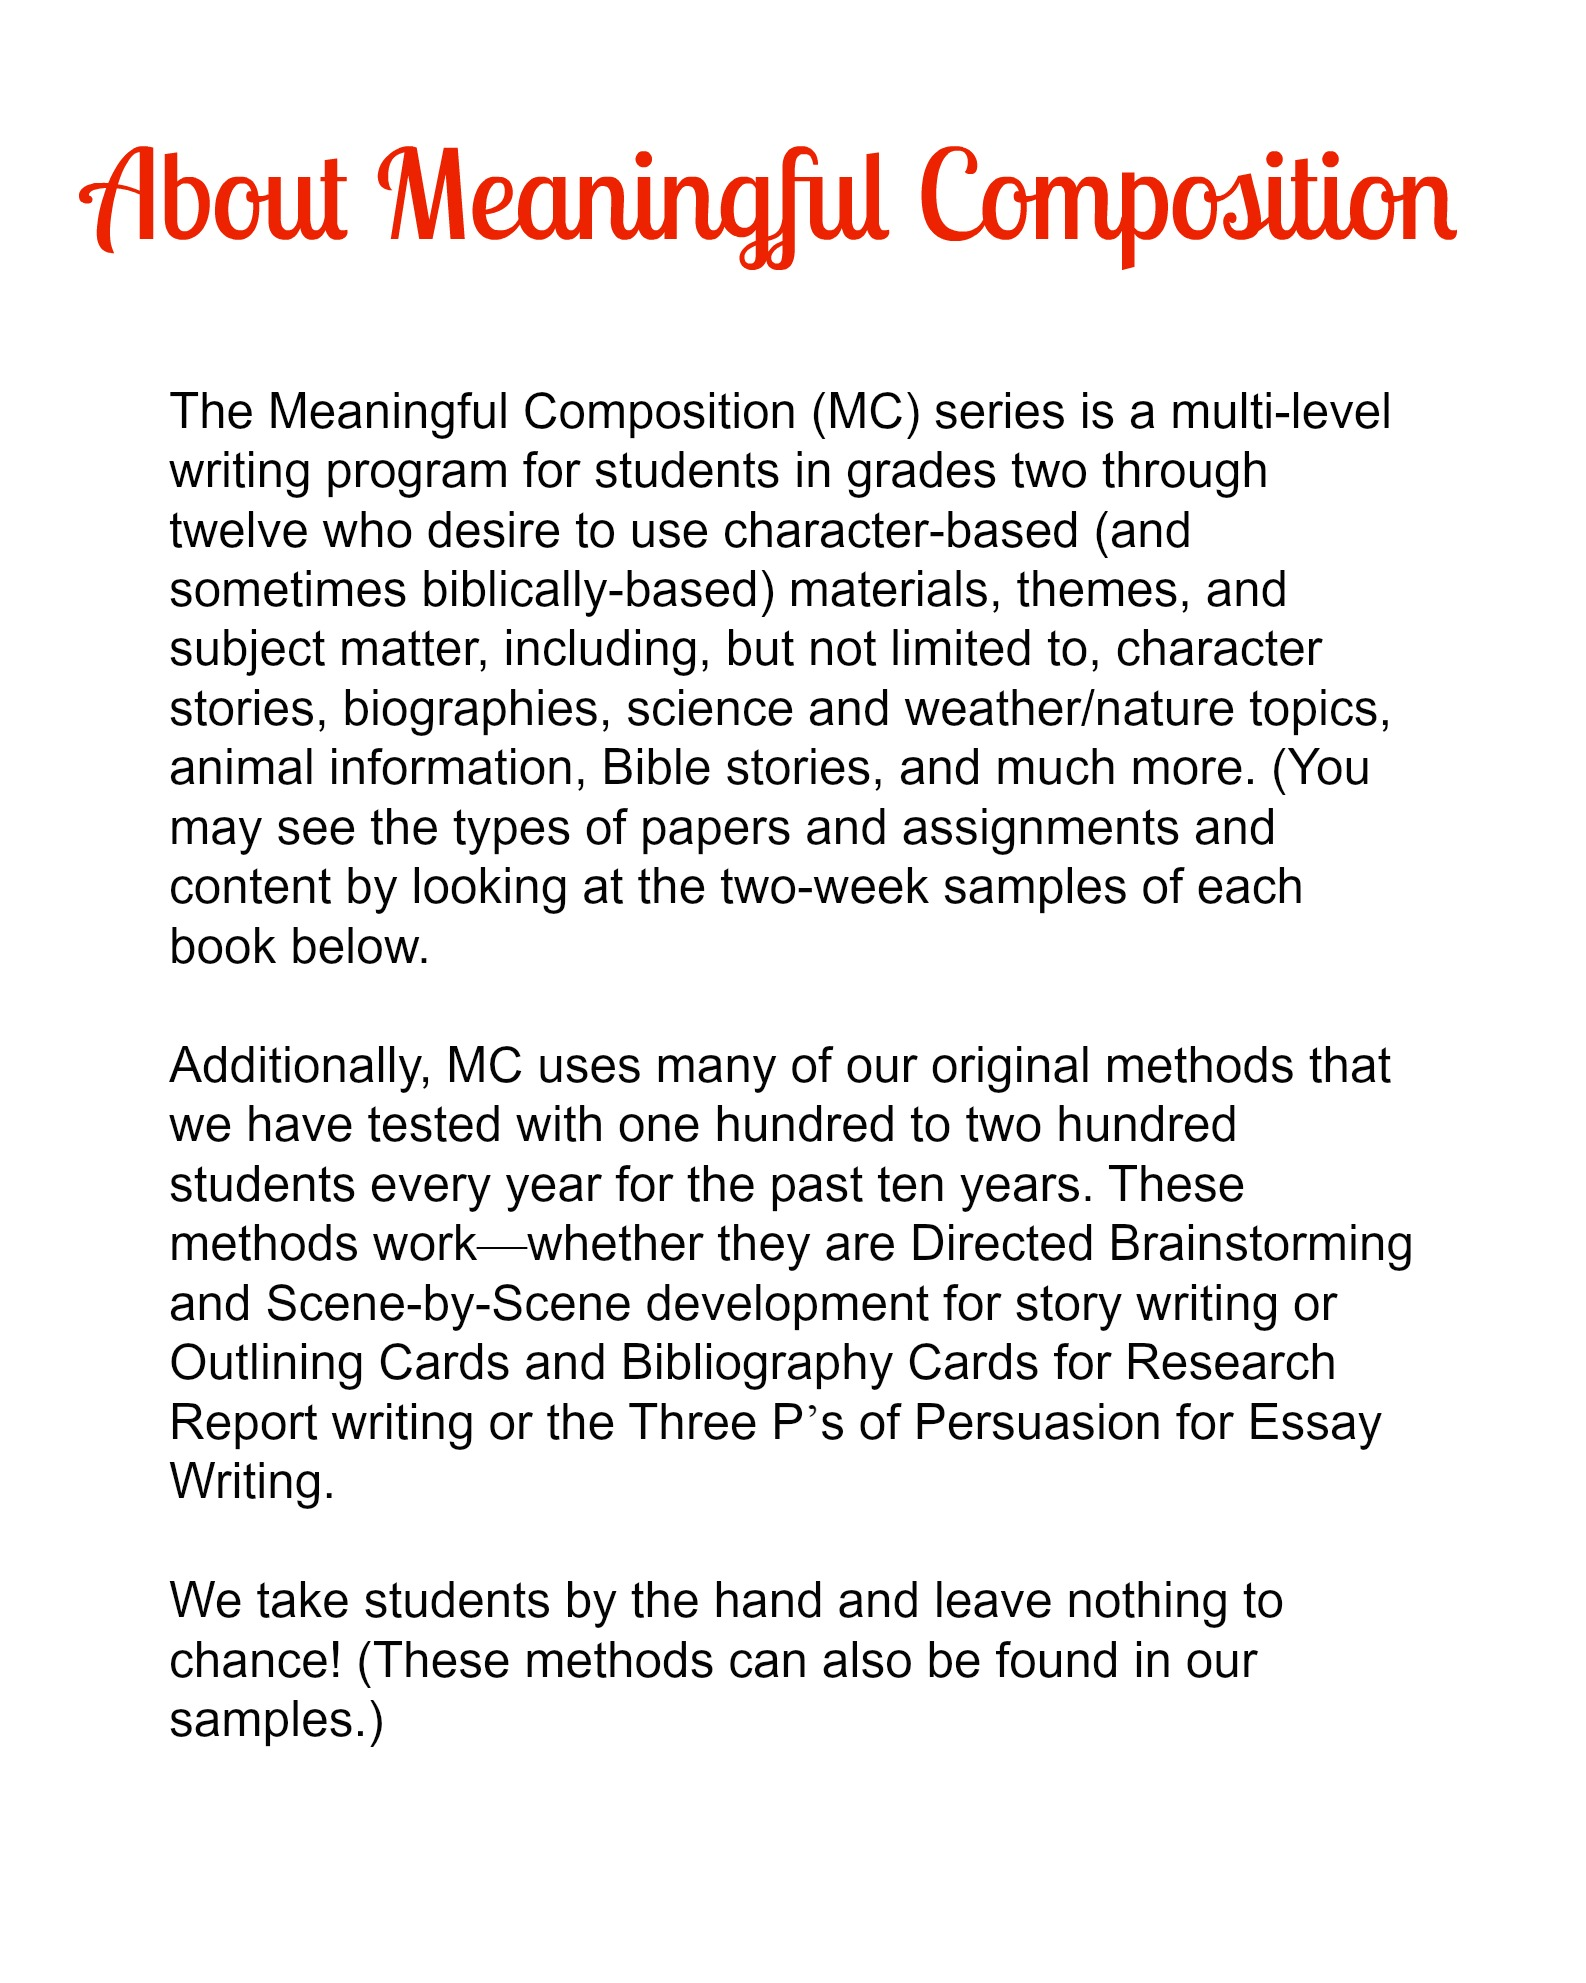 025 Expository Essays Of Introductions Creative Writing Course Paragraph Persuasive On Bullying About Meaningful Compos Cyber How To Prevent Five Stupendous Examples Essay Prompts 5th Grade Pdf For High School Full